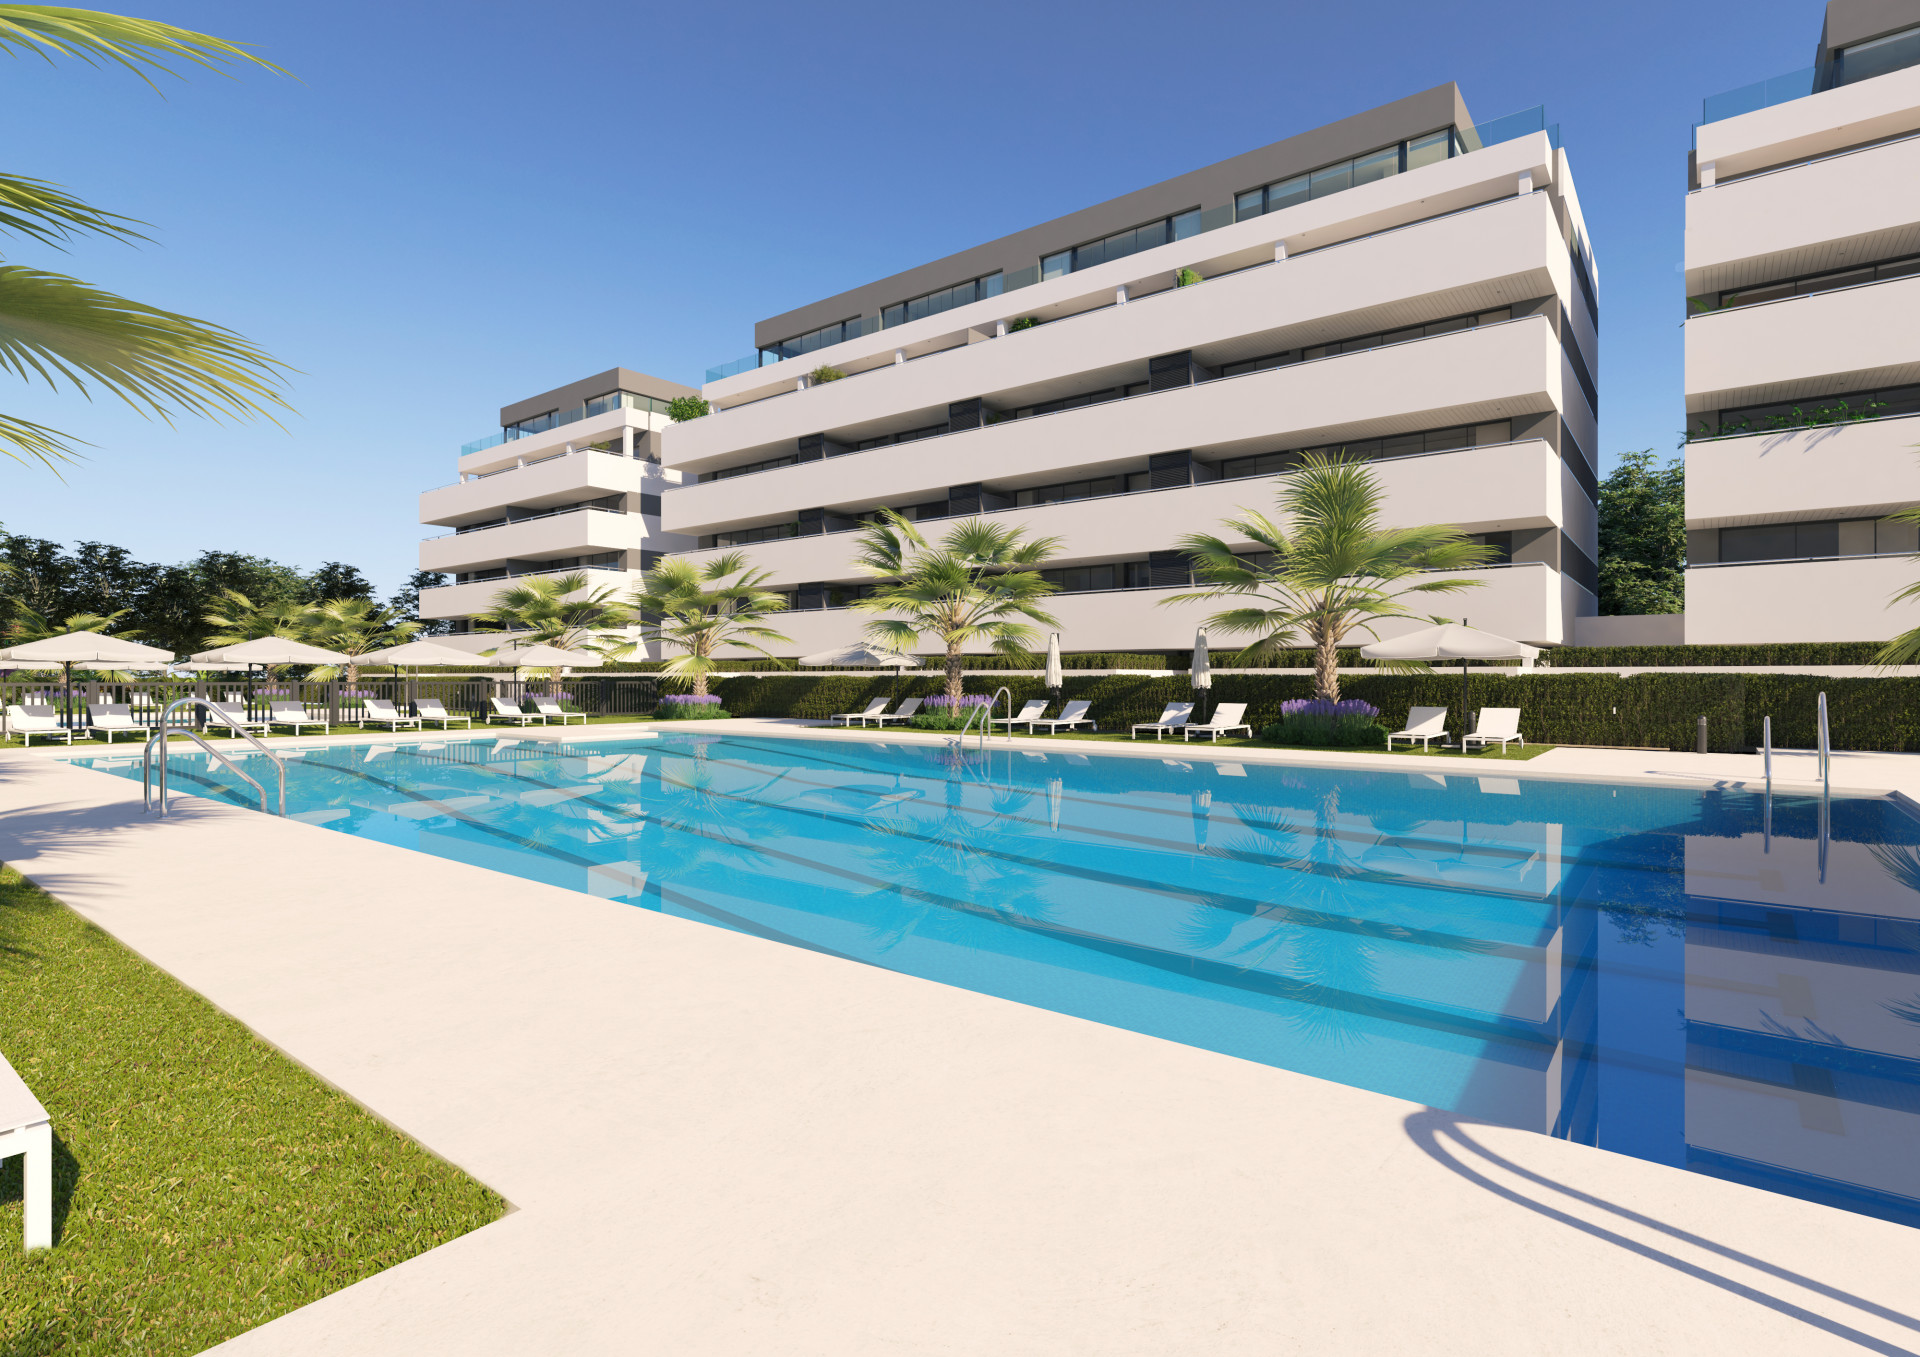 New modern apartments for sale in Torremolinos